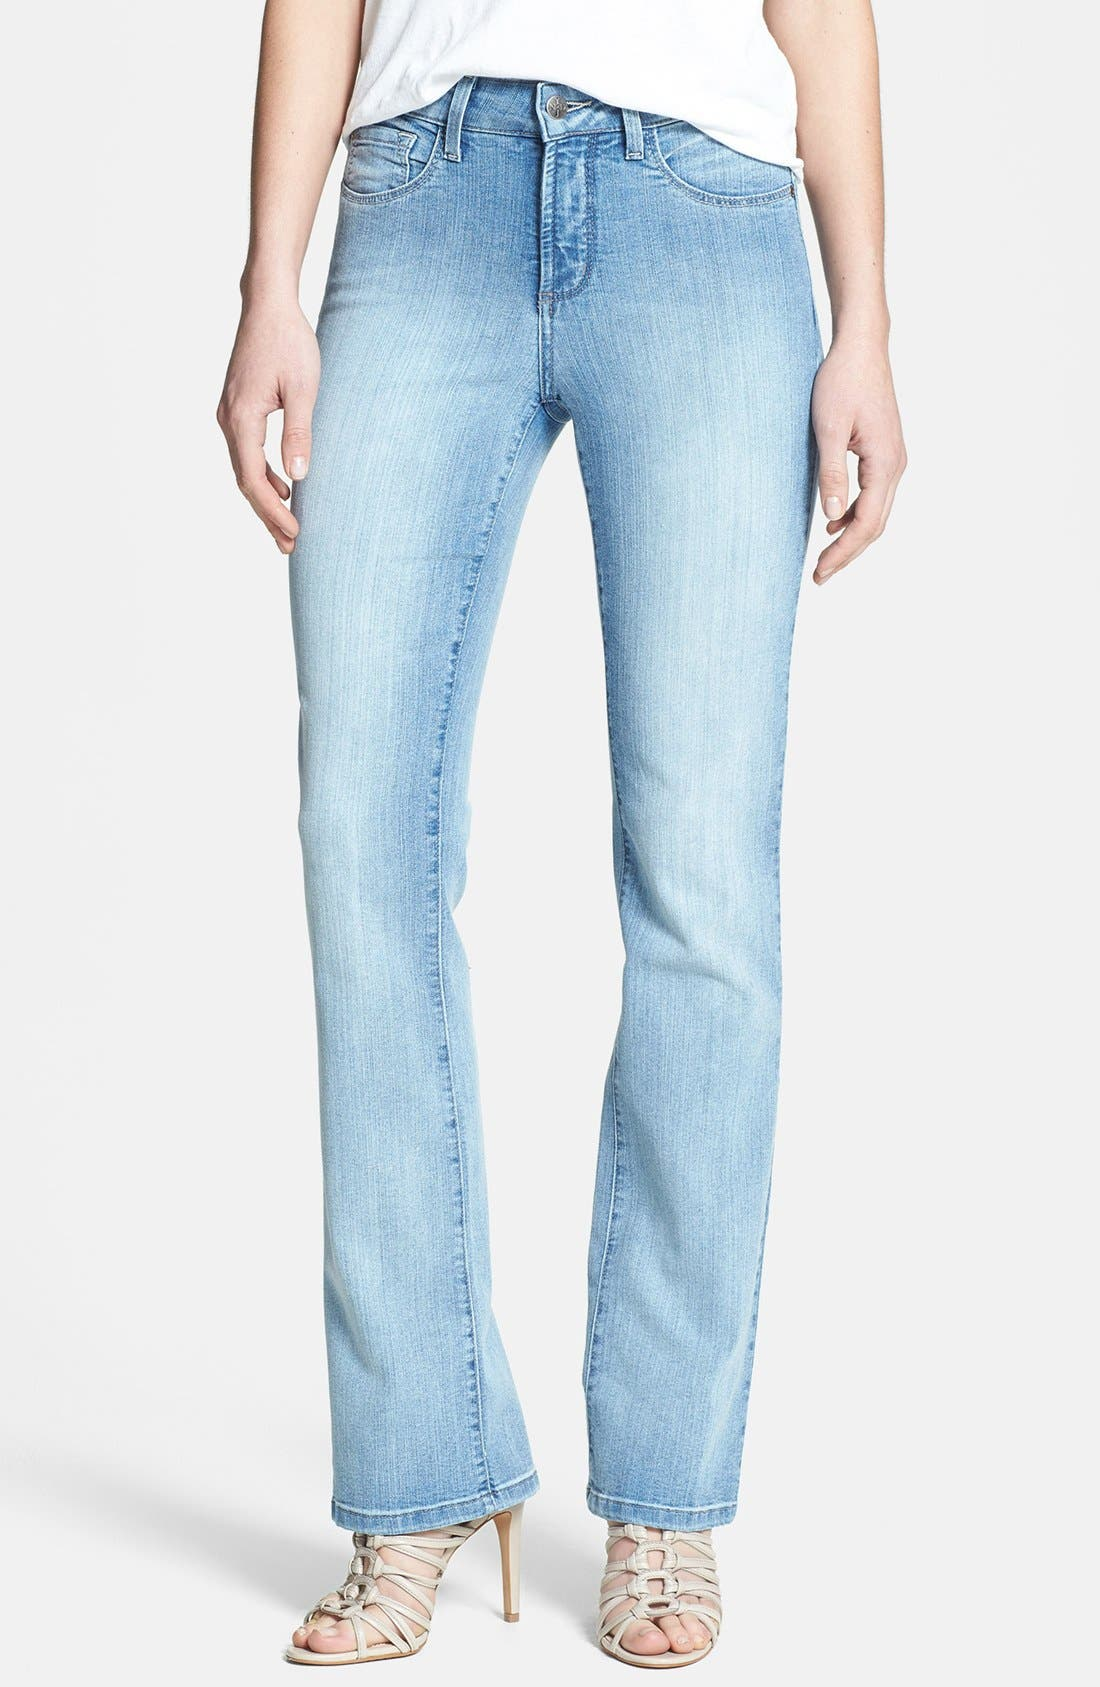 Alternate Image 1 Selected - NYDJ 'Barbara' Stretch Bootcut Jeans (Palos Verdes)